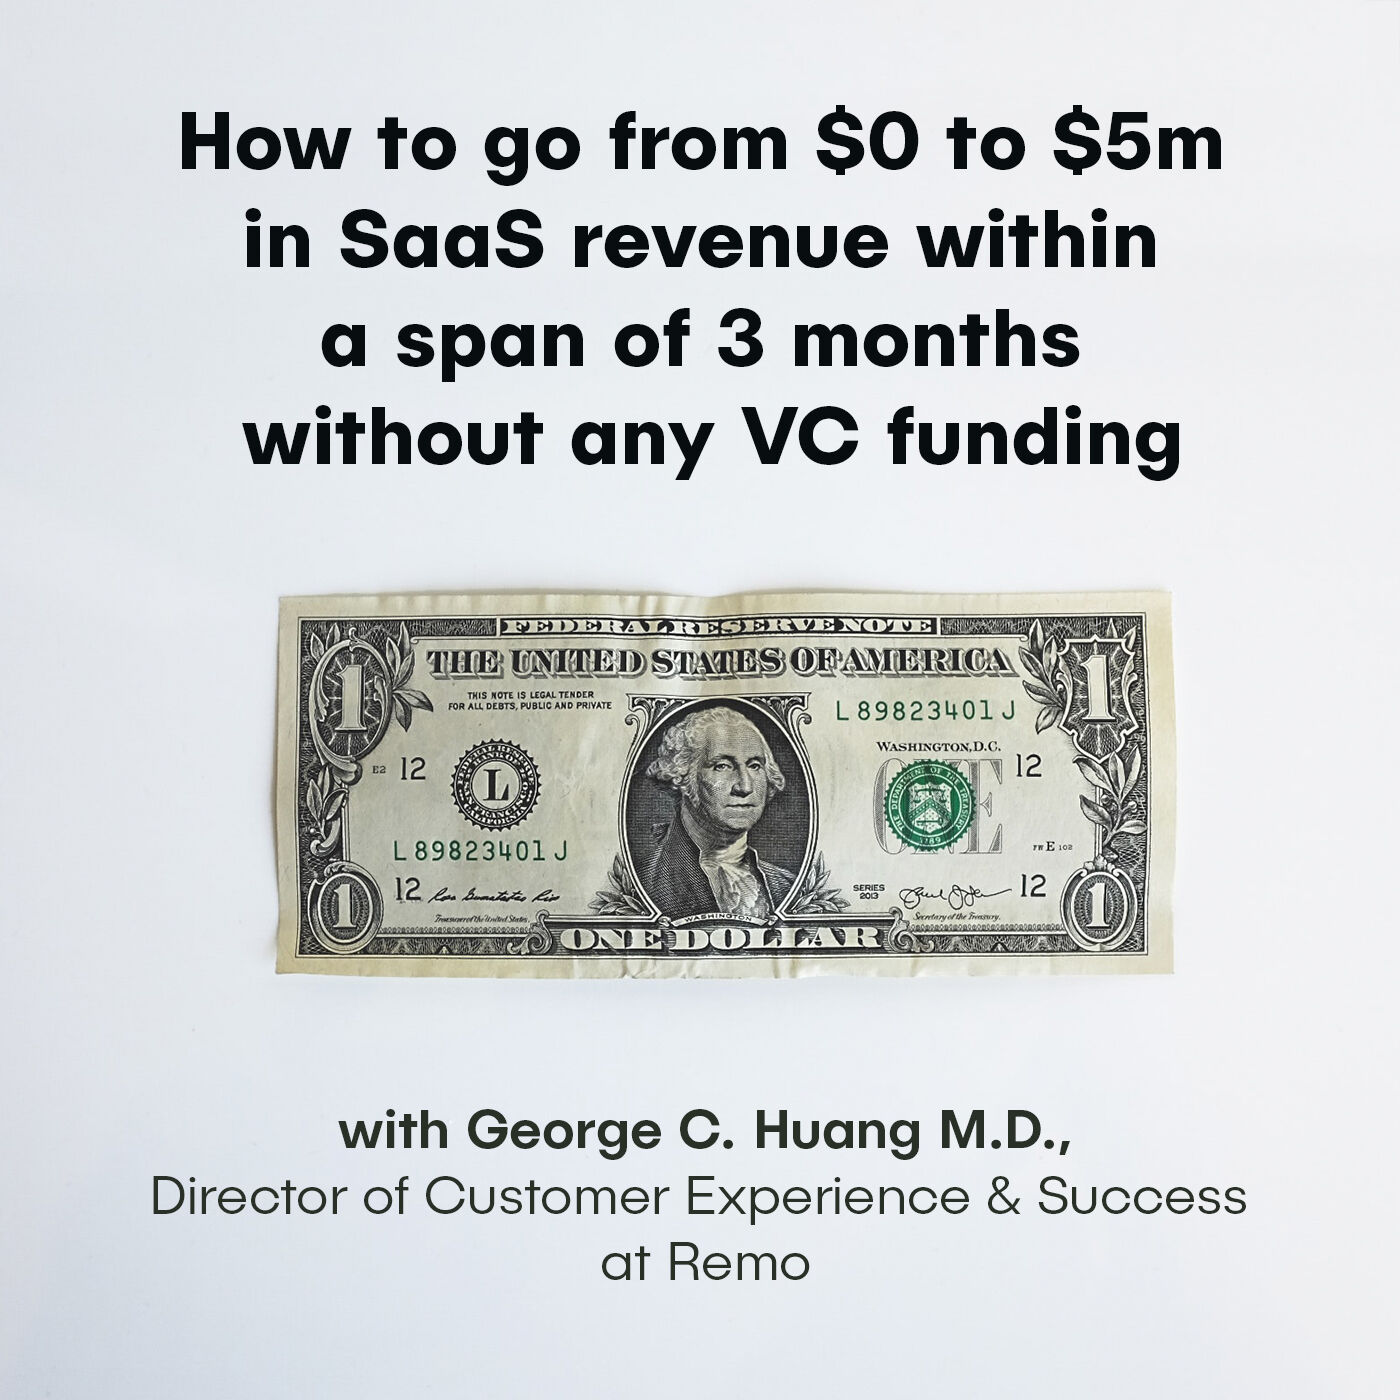 George C. Huang, Director of Customer Experience & Success at Remo - How to go from $0 to $5m in SaaS revenue within a span of 3 months without any VC funding